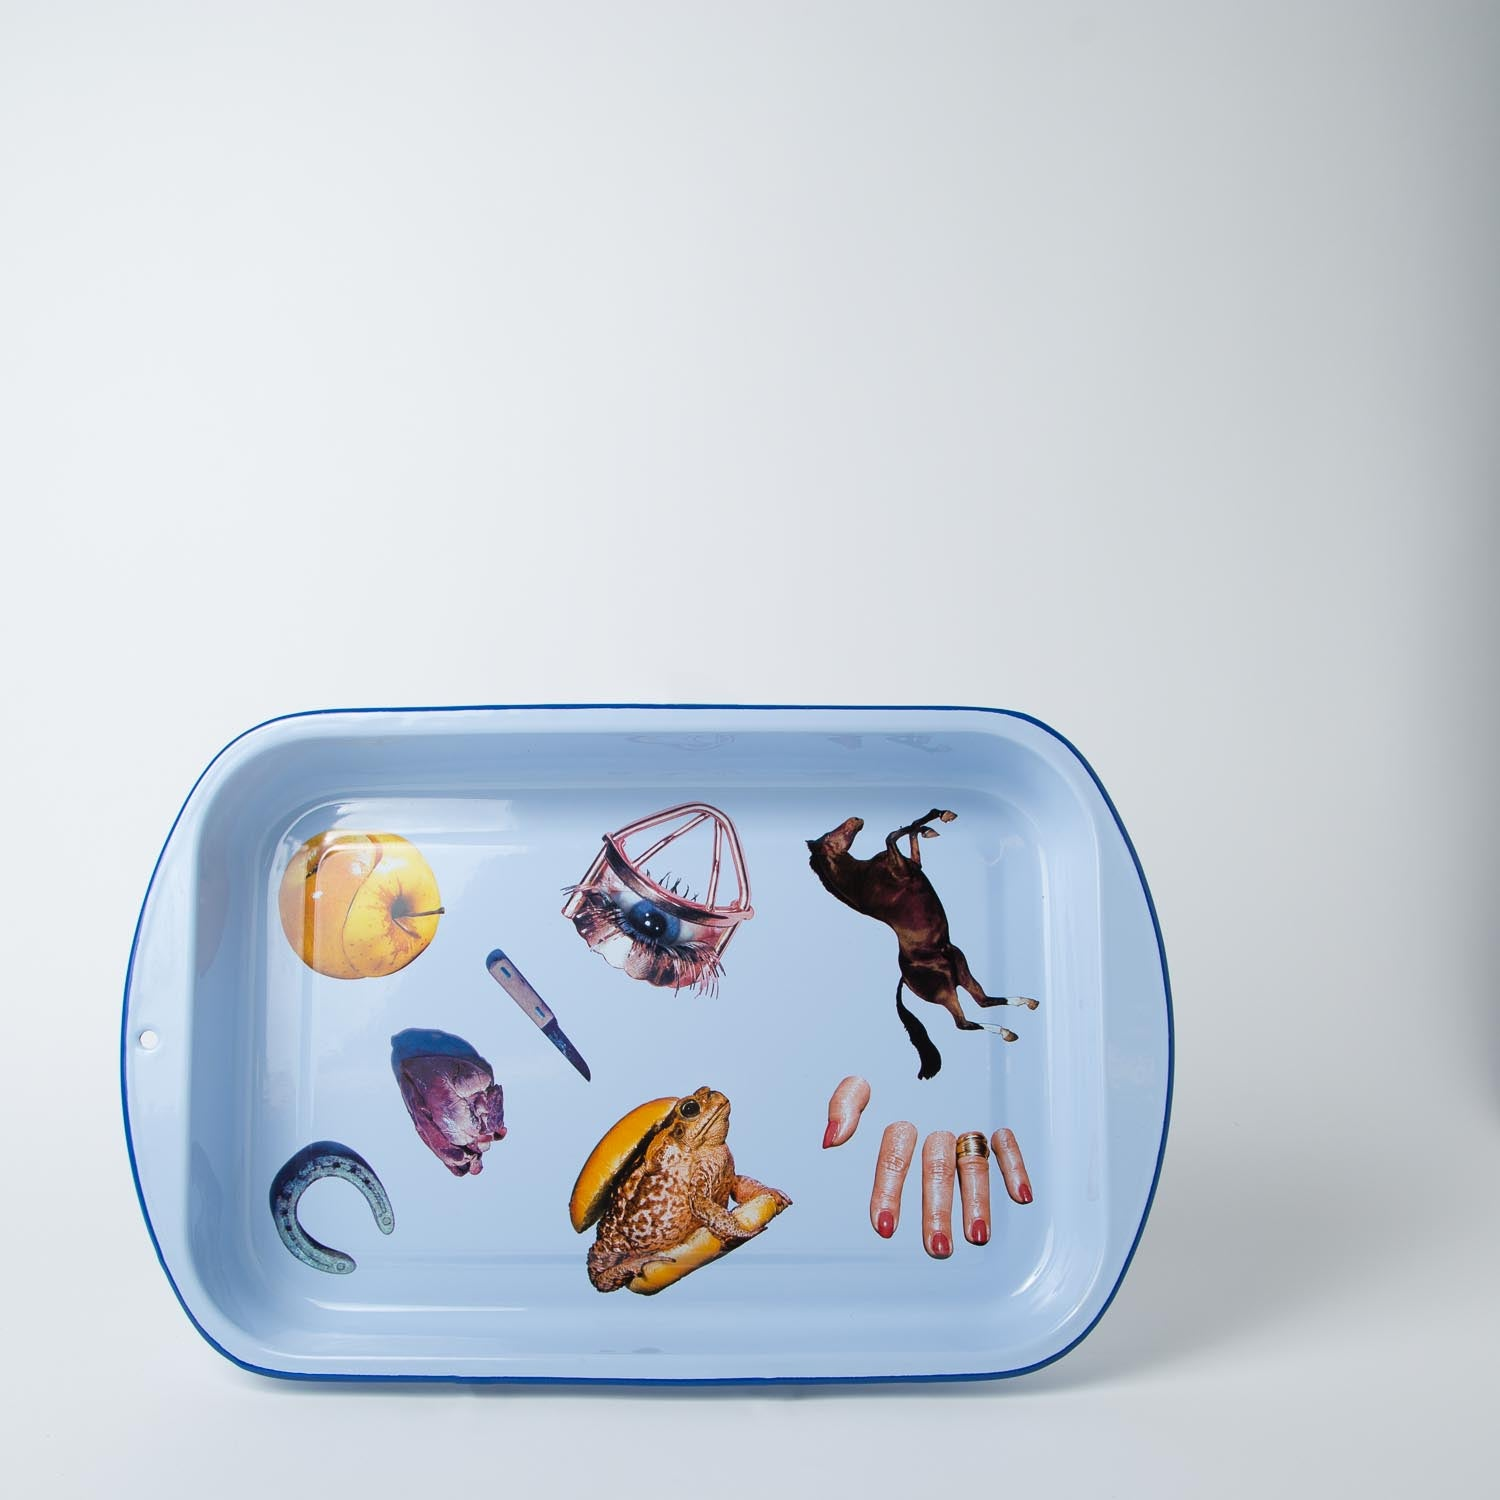 Odd Objects Tray